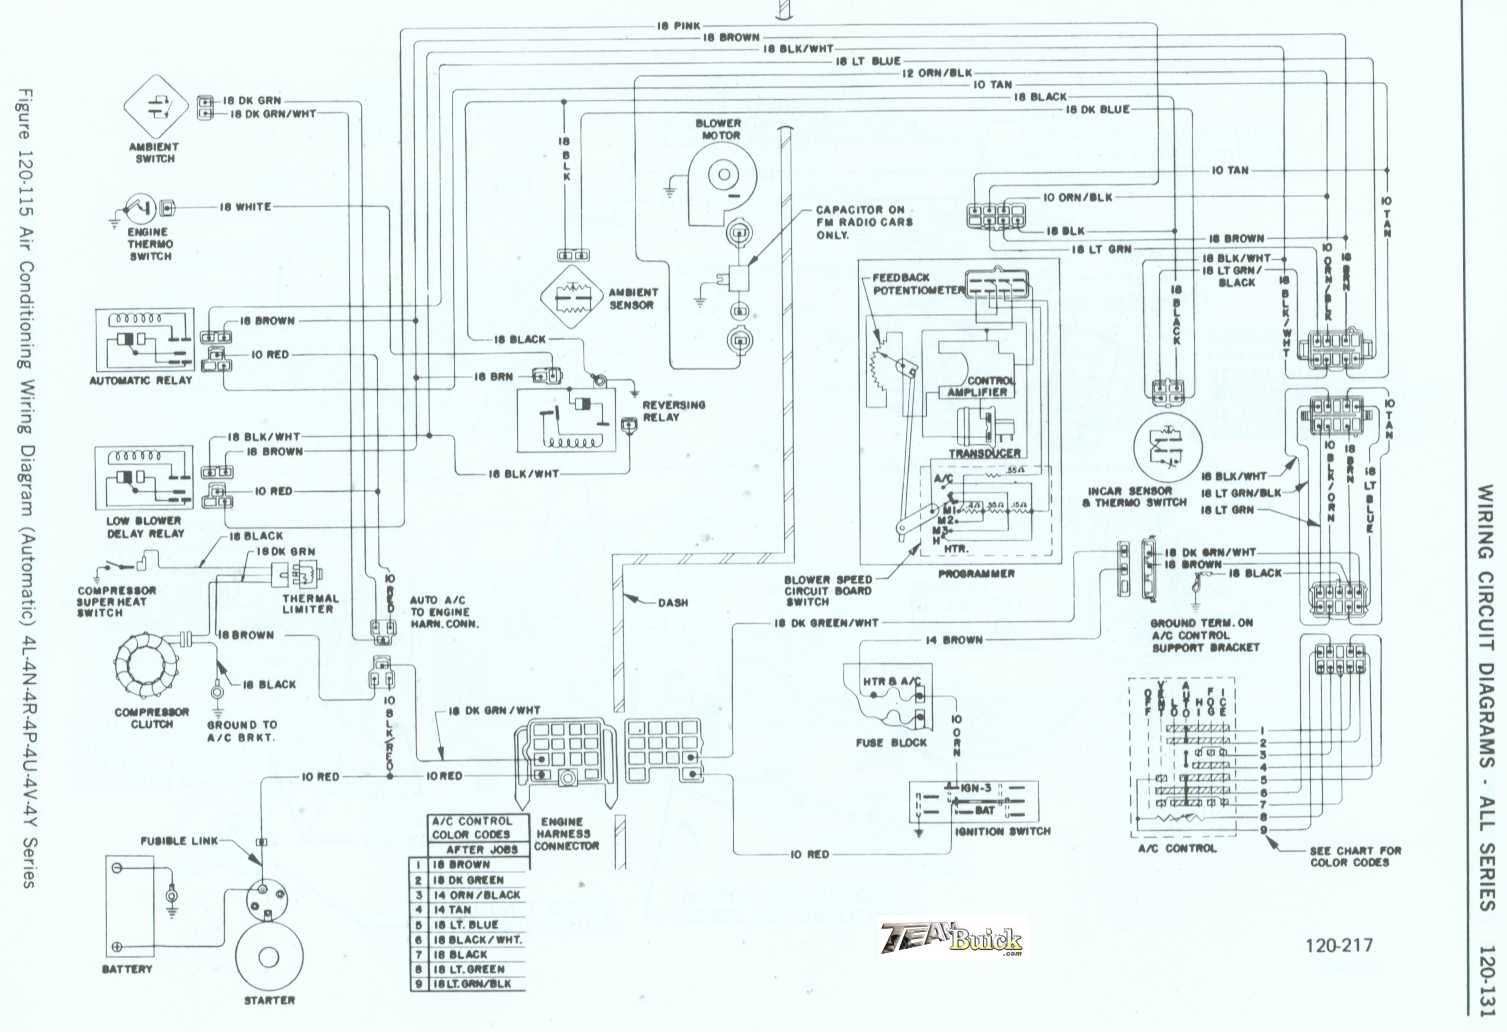 1972 buick air conditioner wiring diagram automatic 4l. Black Bedroom Furniture Sets. Home Design Ideas